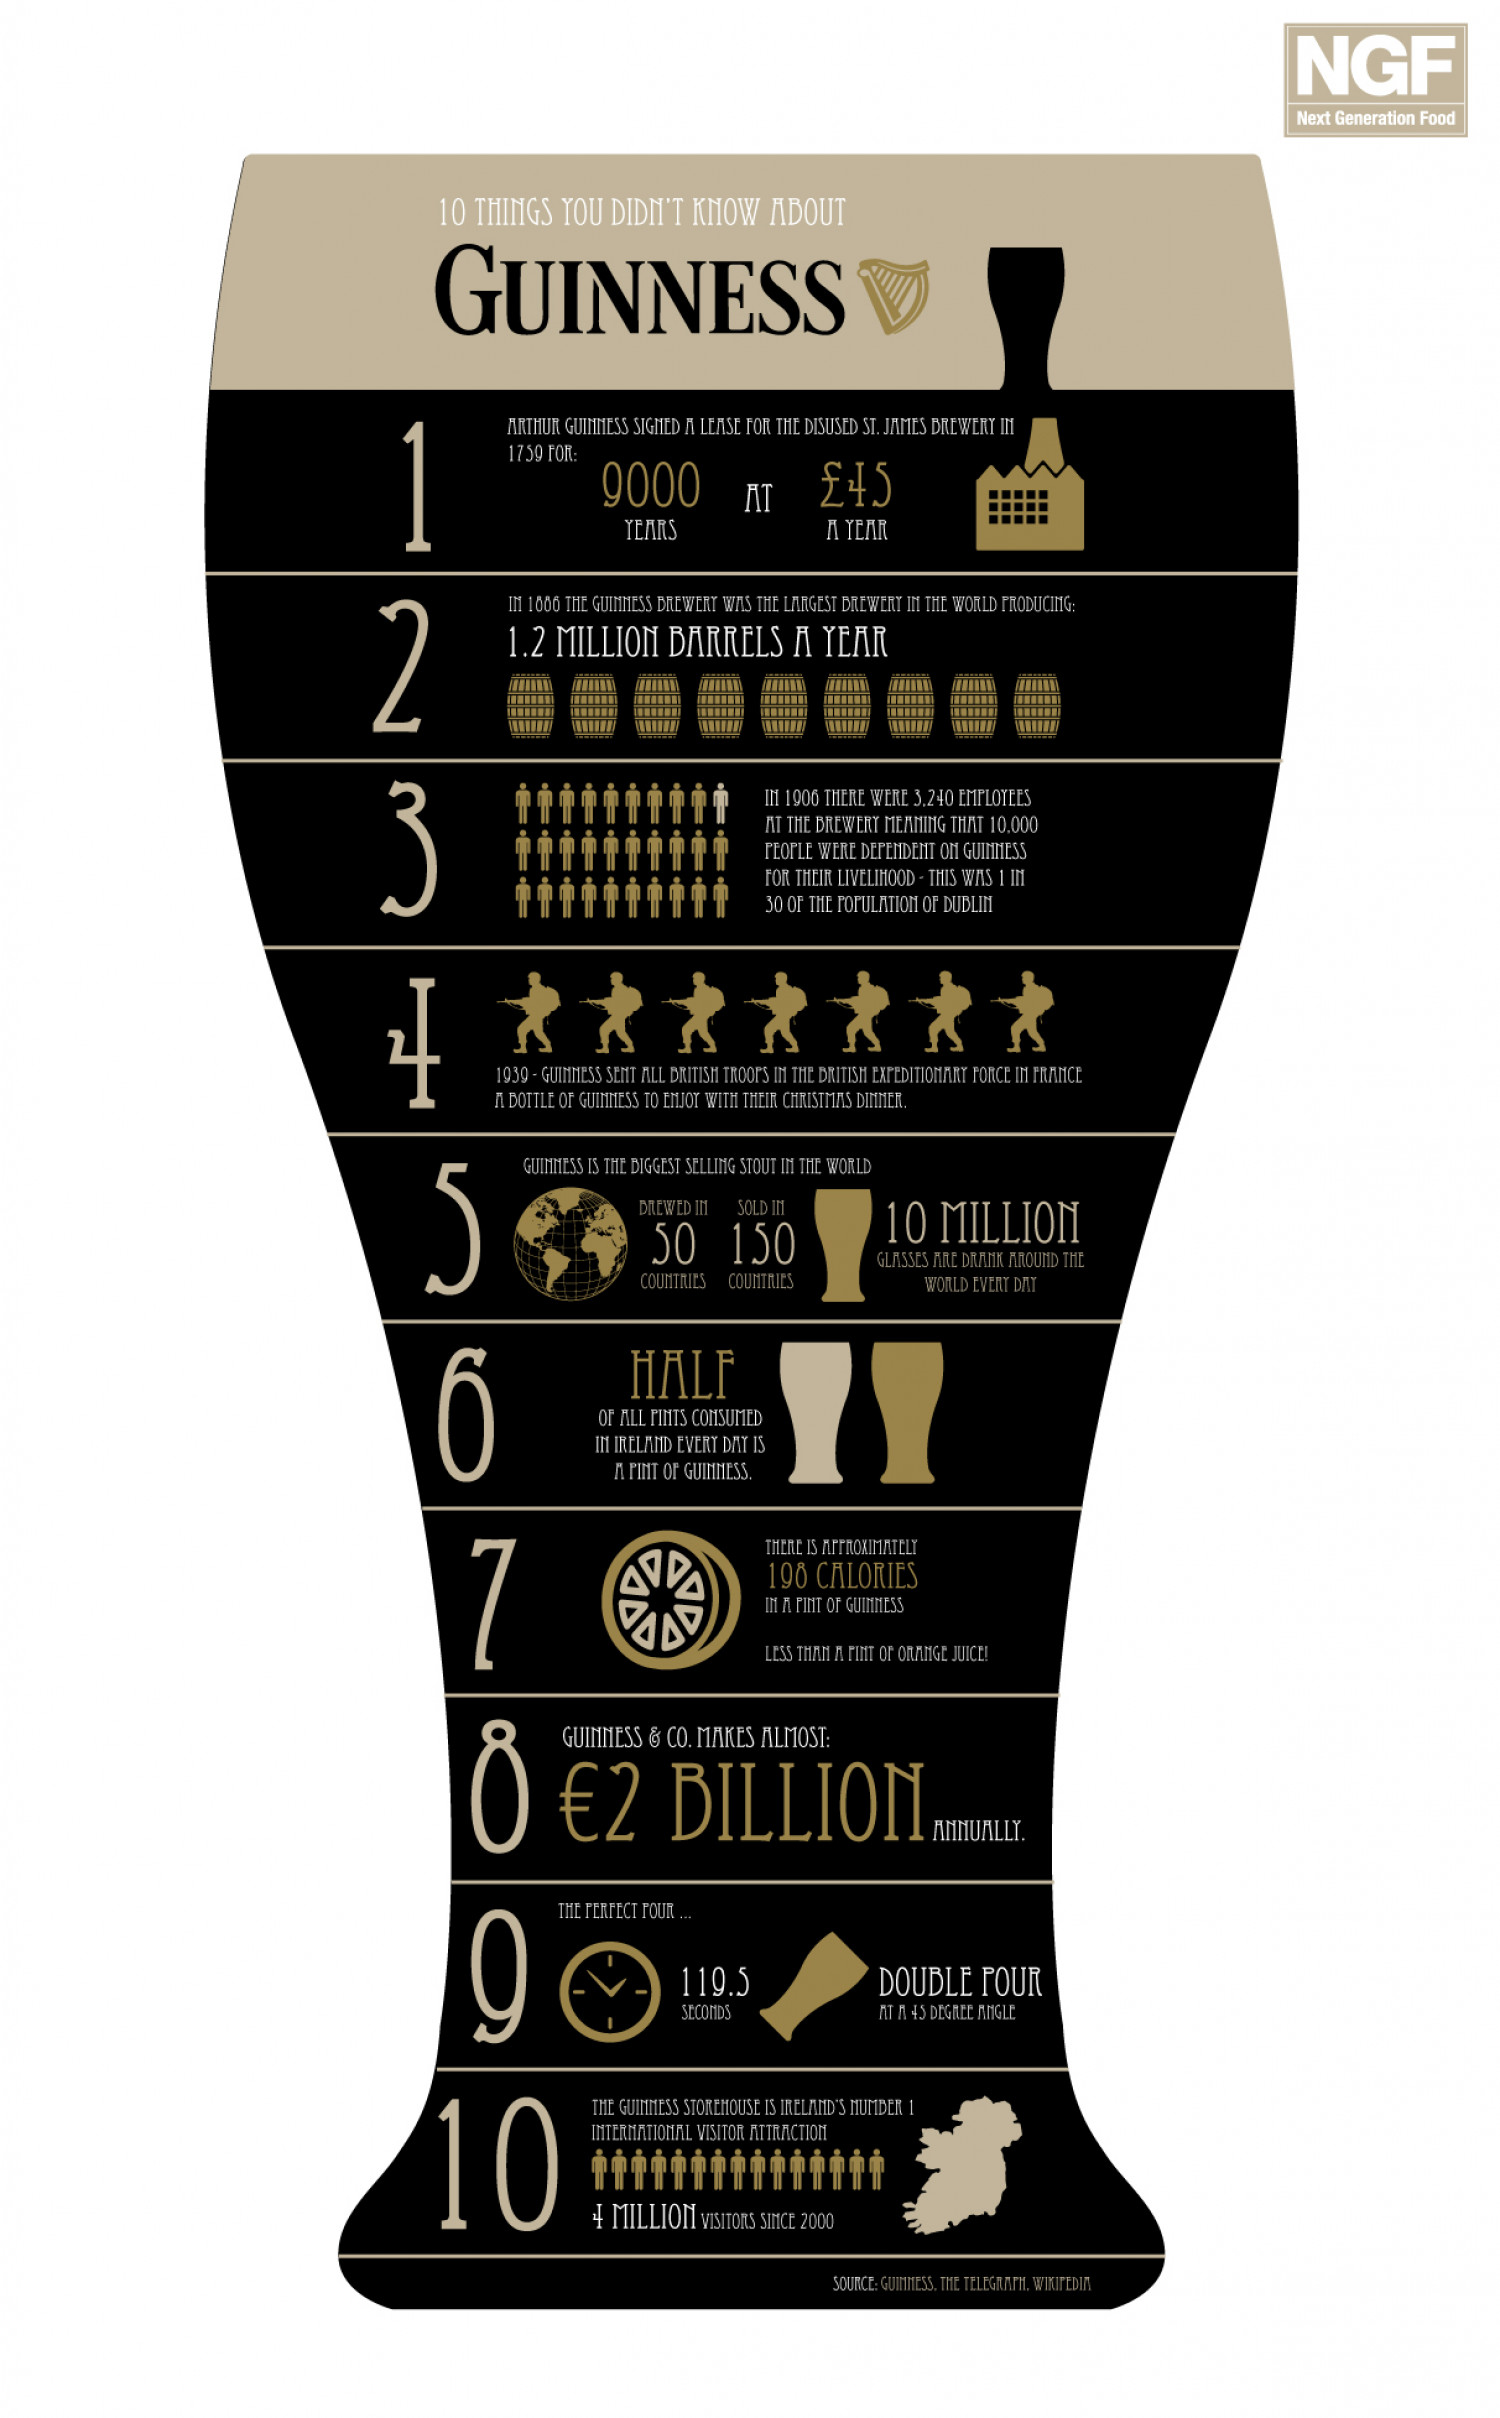 10 Things You Didn't Know About Guinness Infographic